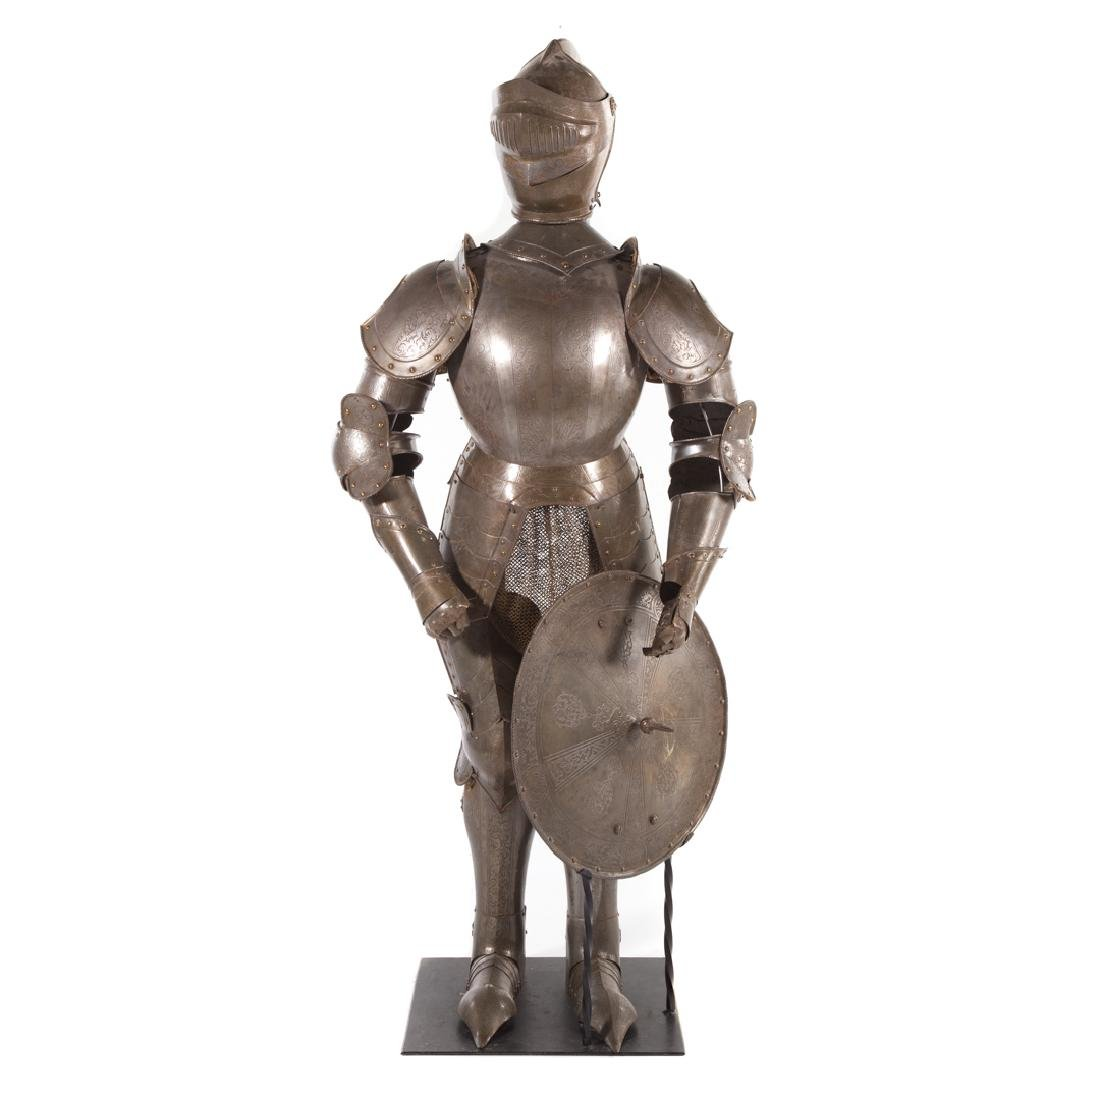 Full-size reproduction suit of armor